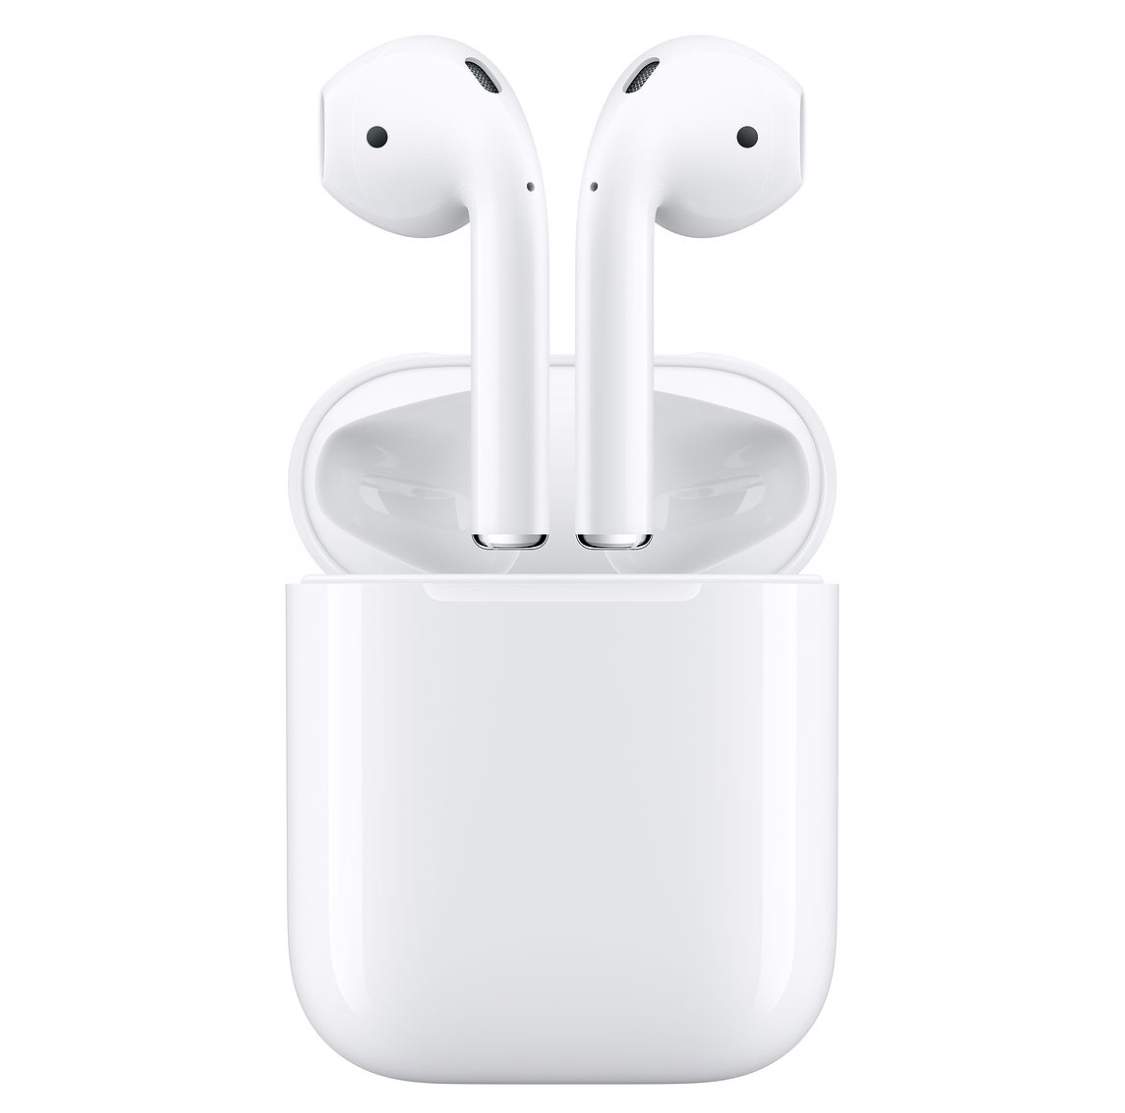 Apple AirPods for your loved one who's still untangling wires. Defiantly a winner $159 Apple. The knock offs are HUGE but look similar at half the price so don't improvise, get Apple.